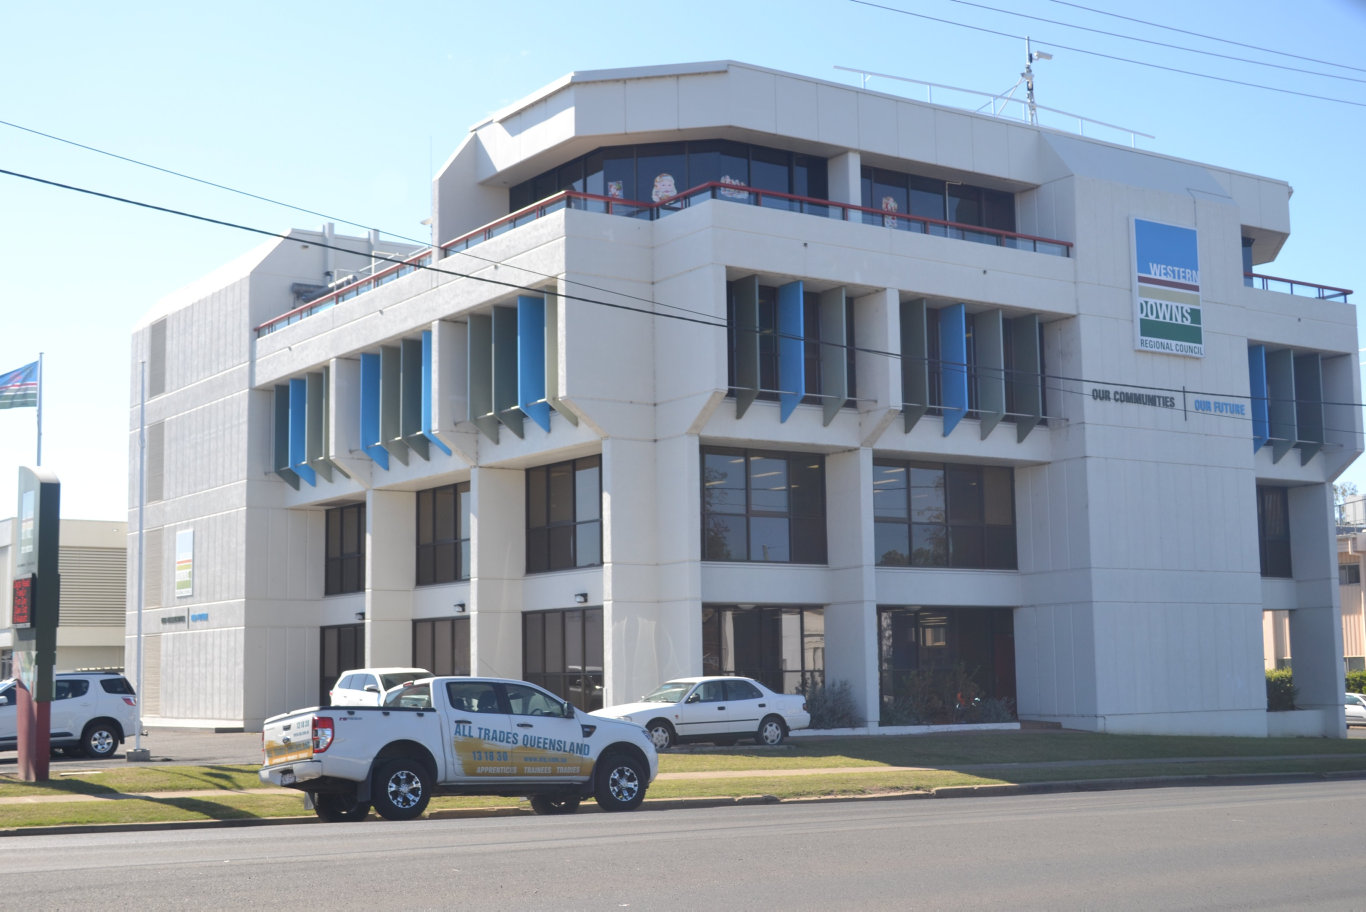 FILE PHOTO: Western Downs Regional Council's Dalby administration building.